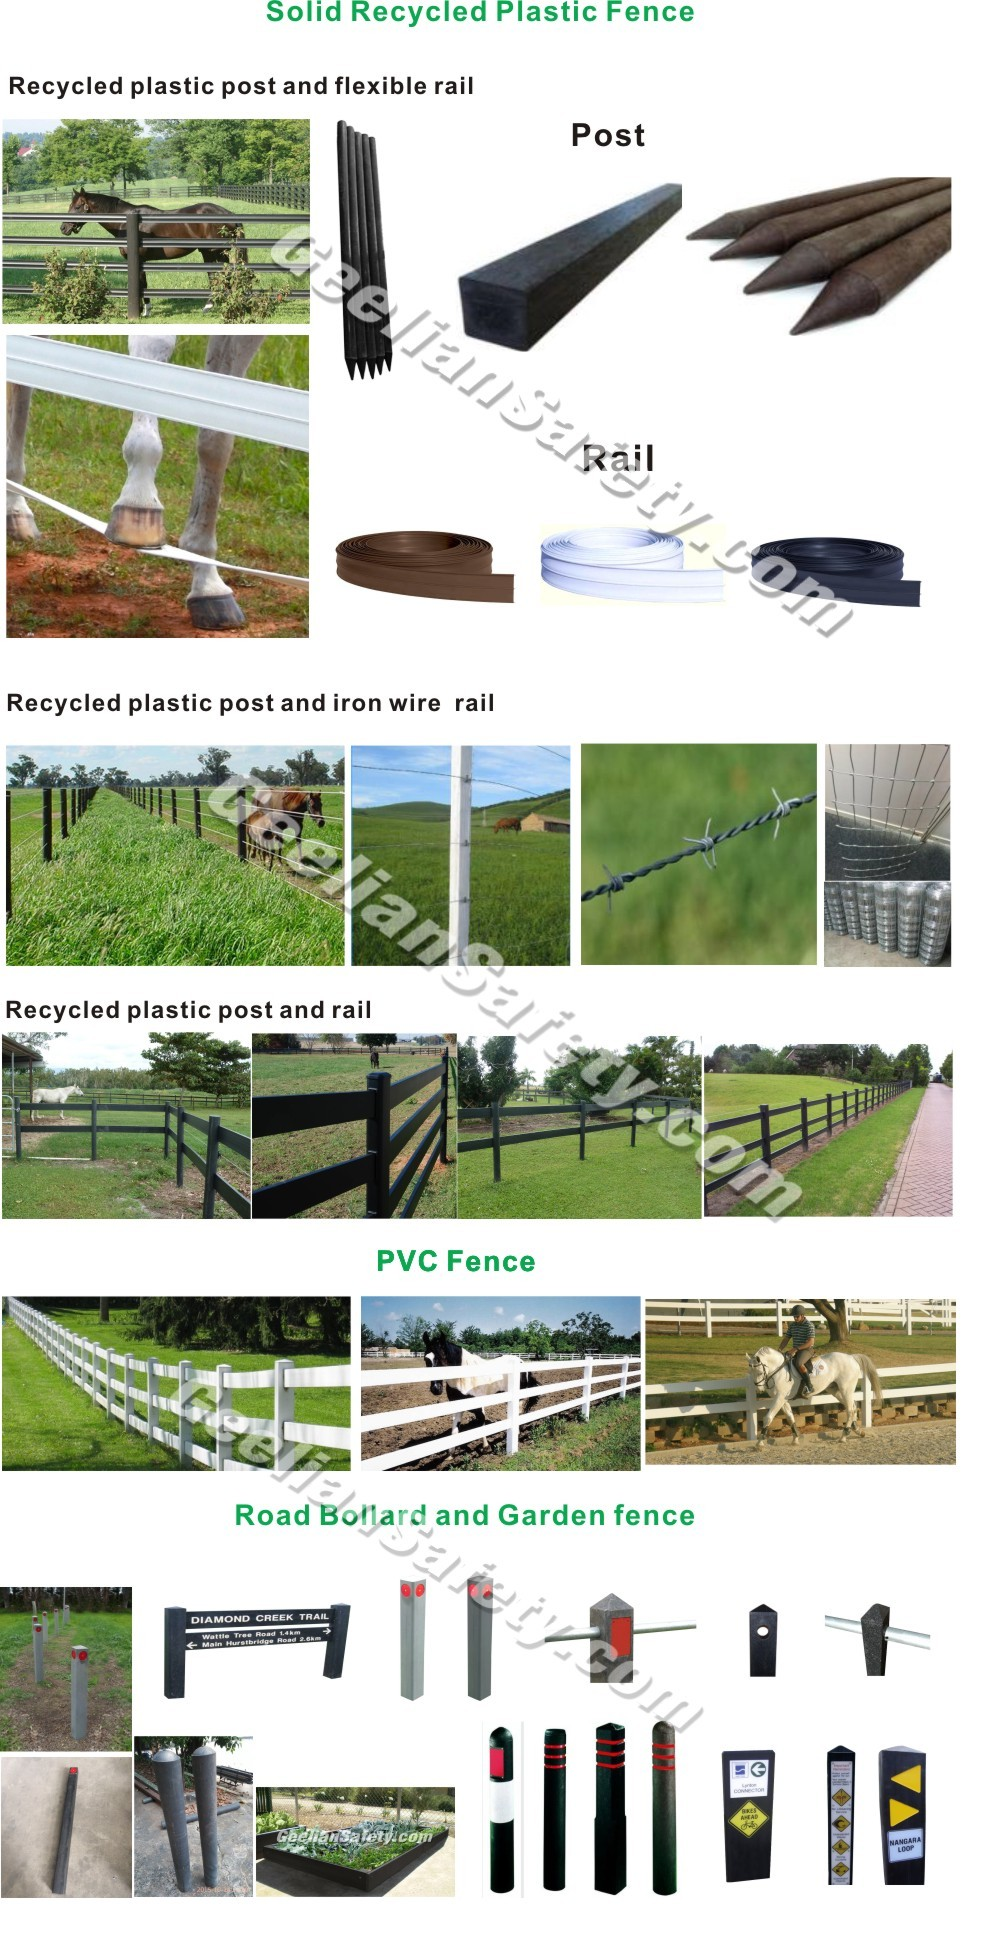 Australian Market Best Quality Solid Recycled Plastic Fence Post For Horse Fence/Farm Fence